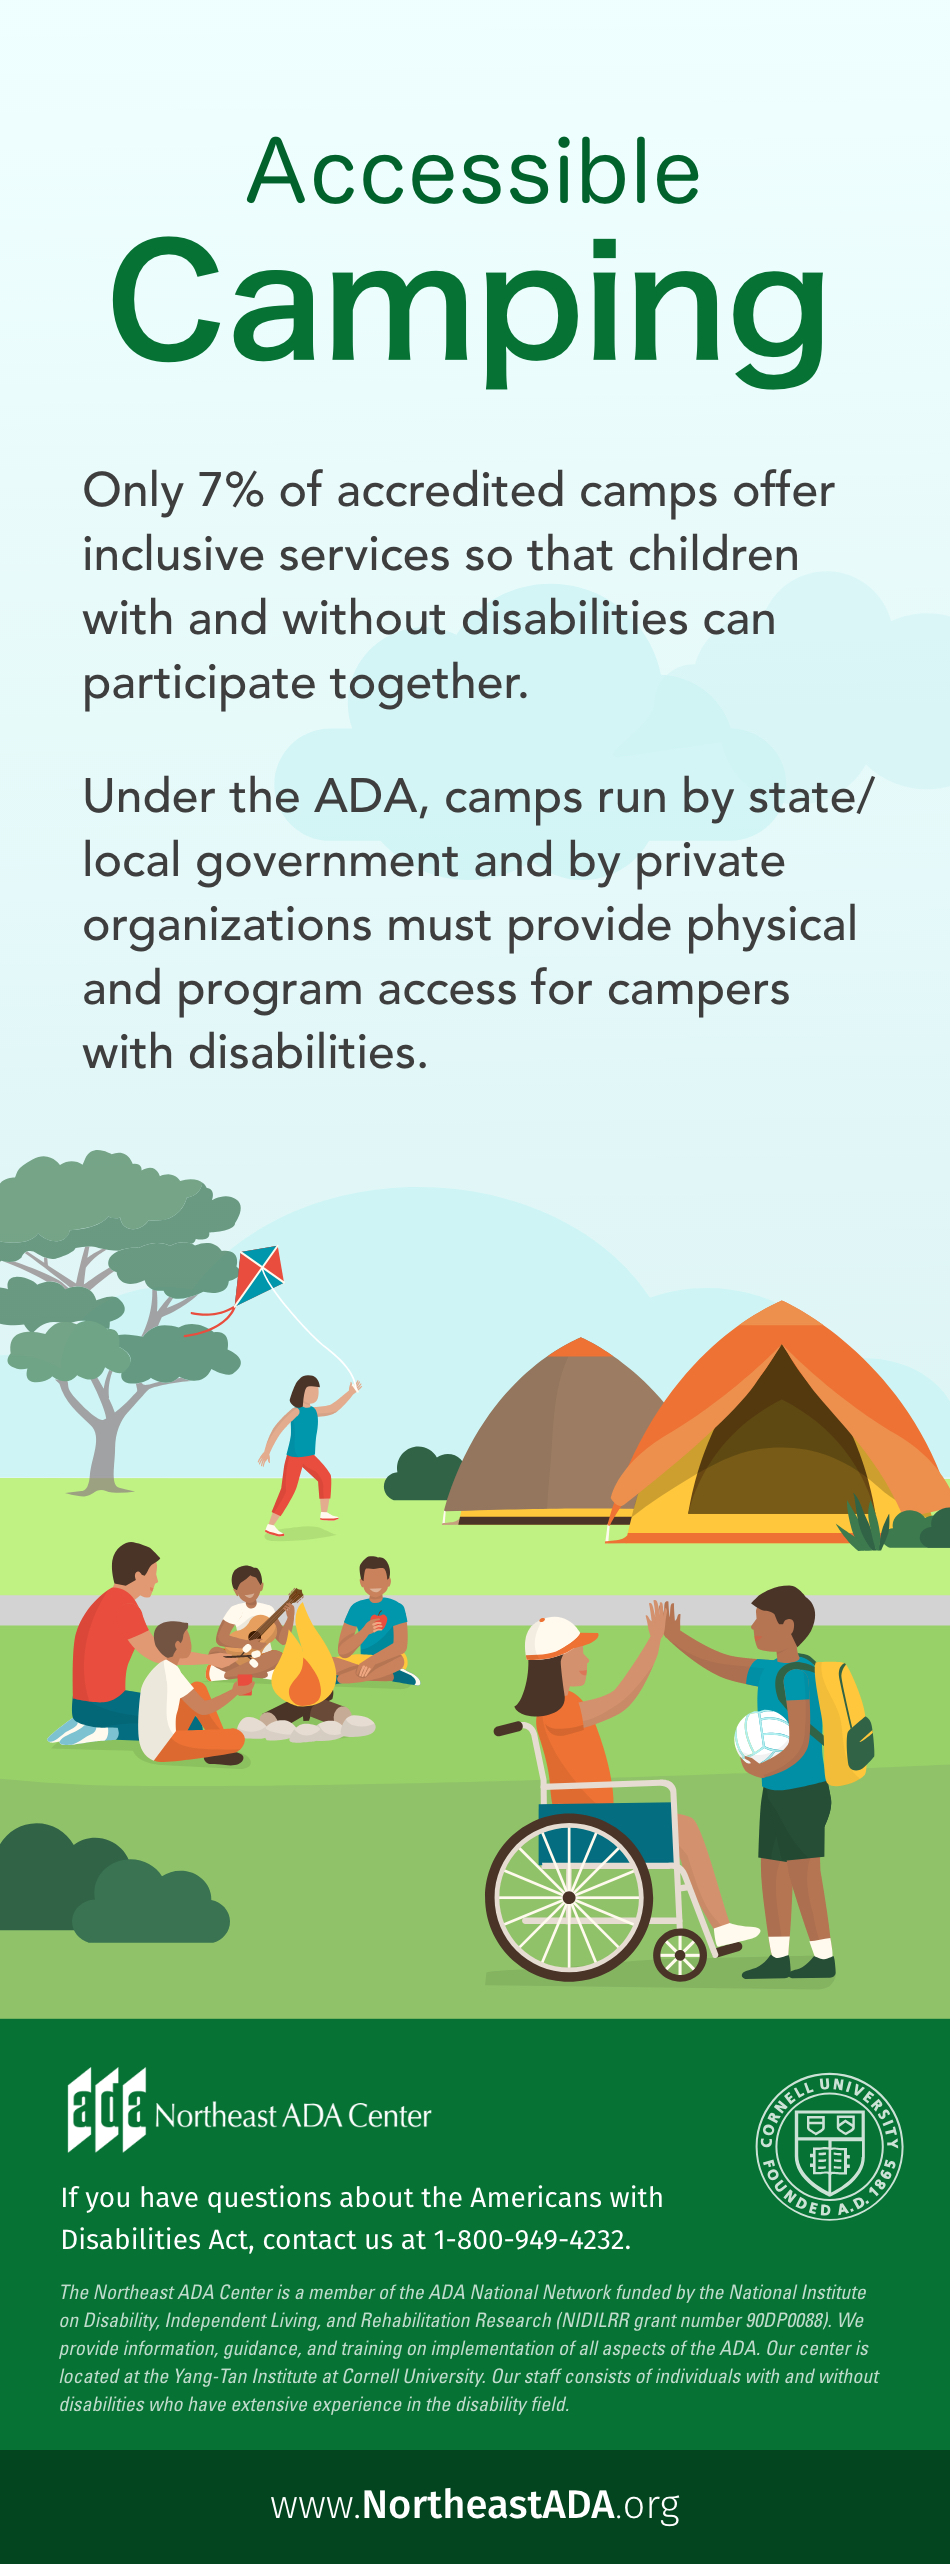 Infographic titled 'Accessible Camping': Only 7% of accredited camps offer inclusive services so that children with and without disabilities can participate together. Under the ADA, campus run by state/local government and by private organizations must provide physical and program access for campers with disabilities. If you have questions about the Americans with Disabilities Act, contact us at 1-800-949-4232.